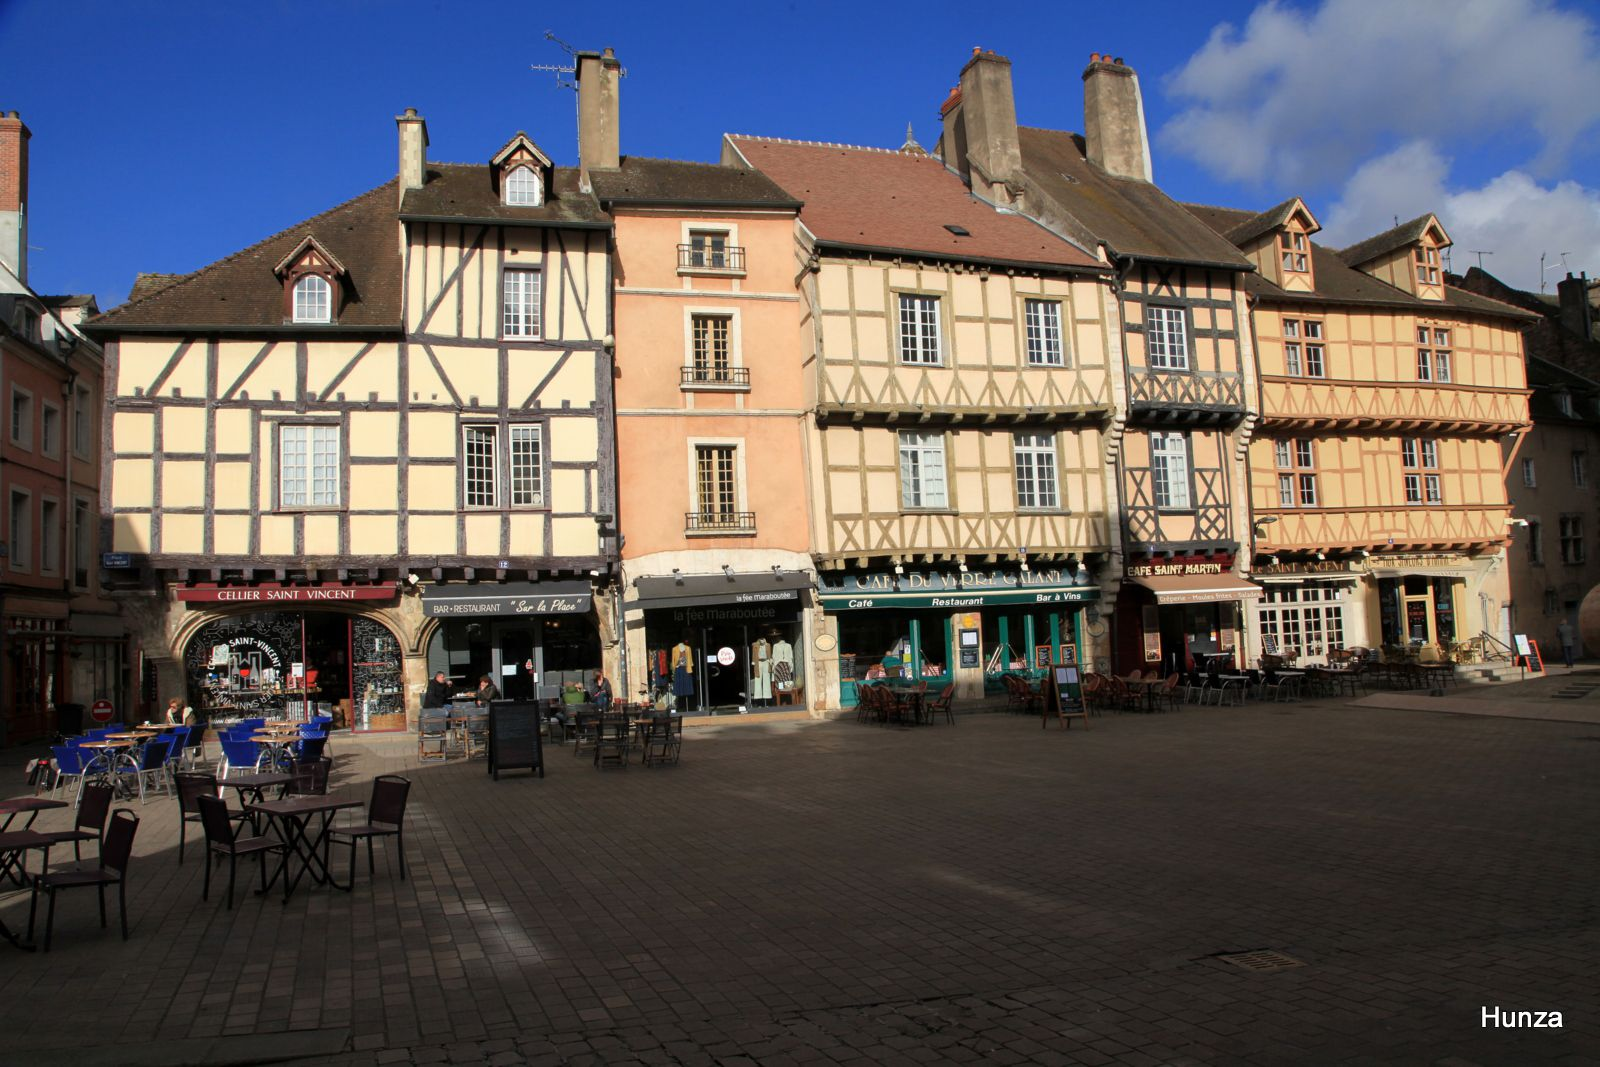 Place Saint-Vincent